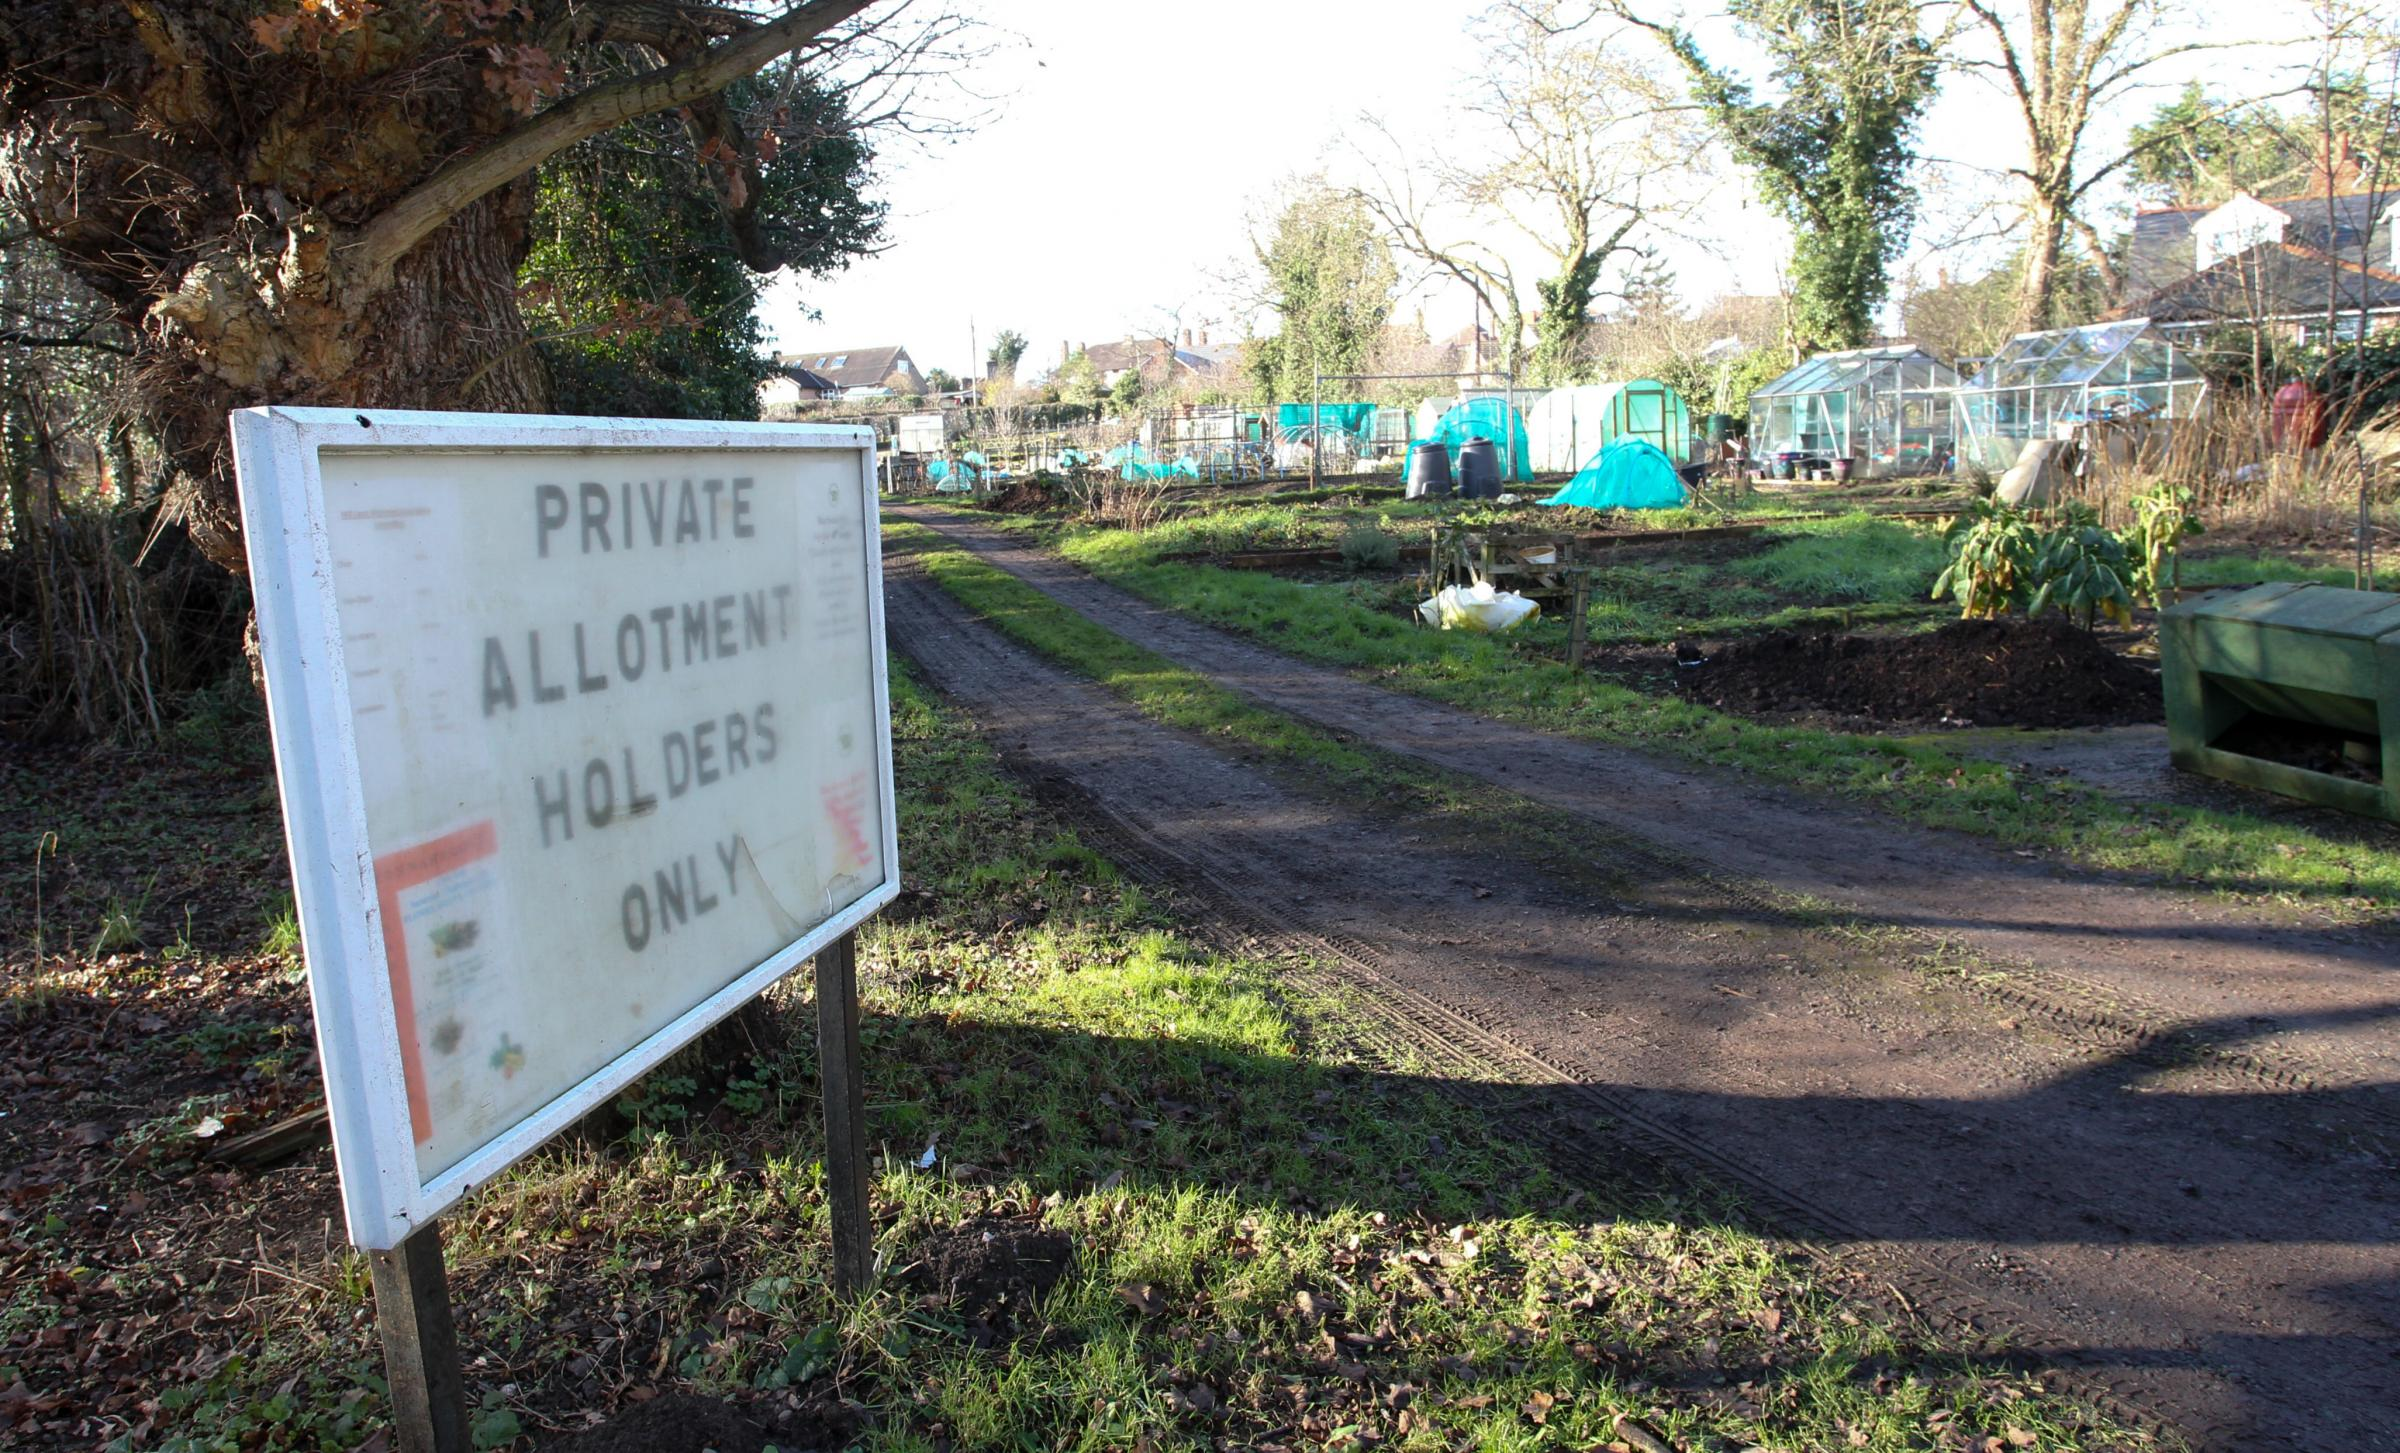 Concerns raised over two-year wait for Connah's Quay allotment